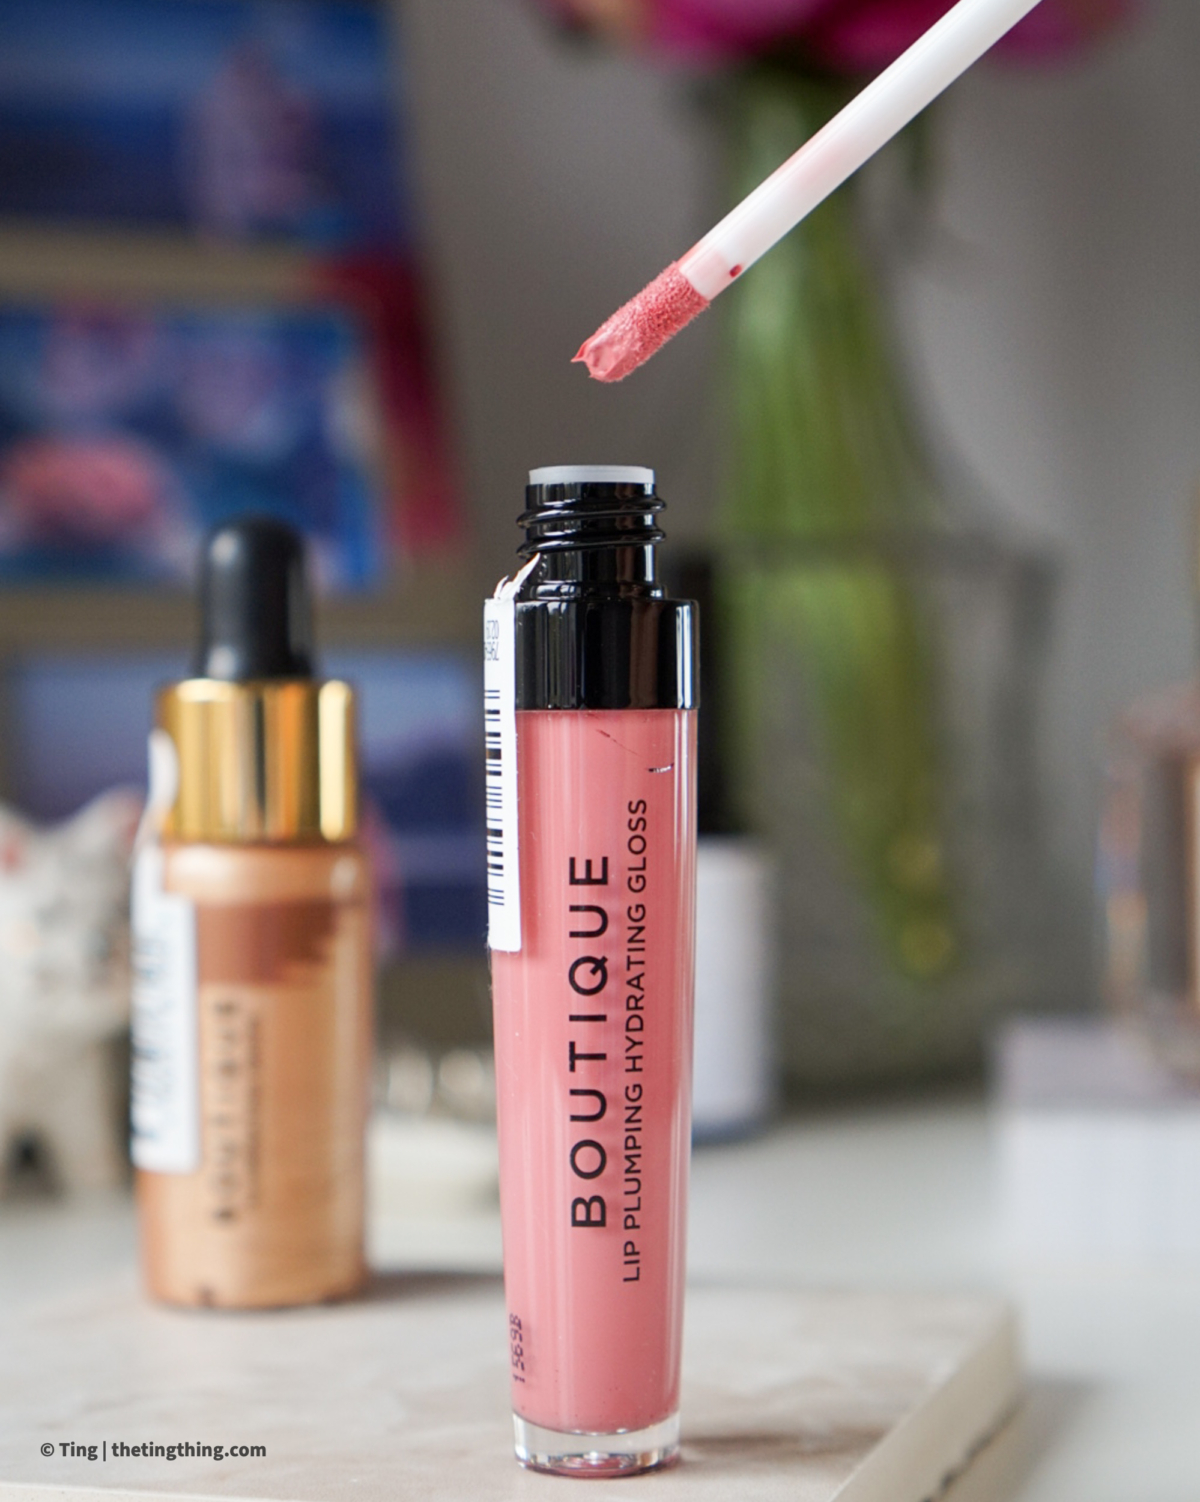 Sainsburys Boutique Lip Plumping Hydrating Gloss in Kiss Me Softly